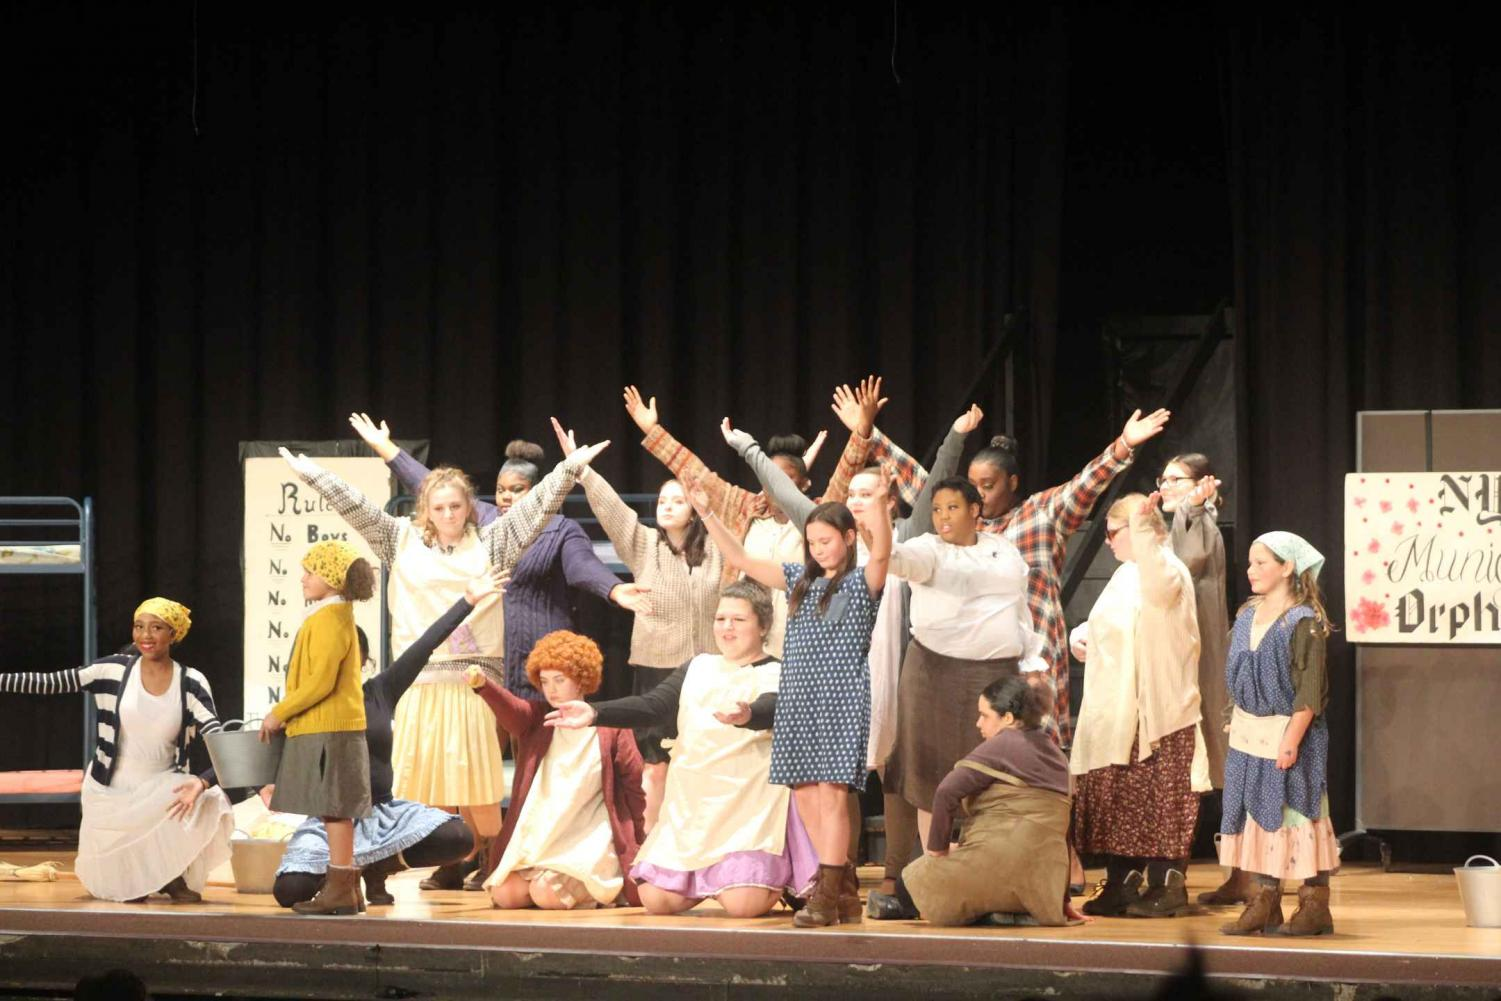 Drama Society members and kids posing as they finish one of the songs of the night.